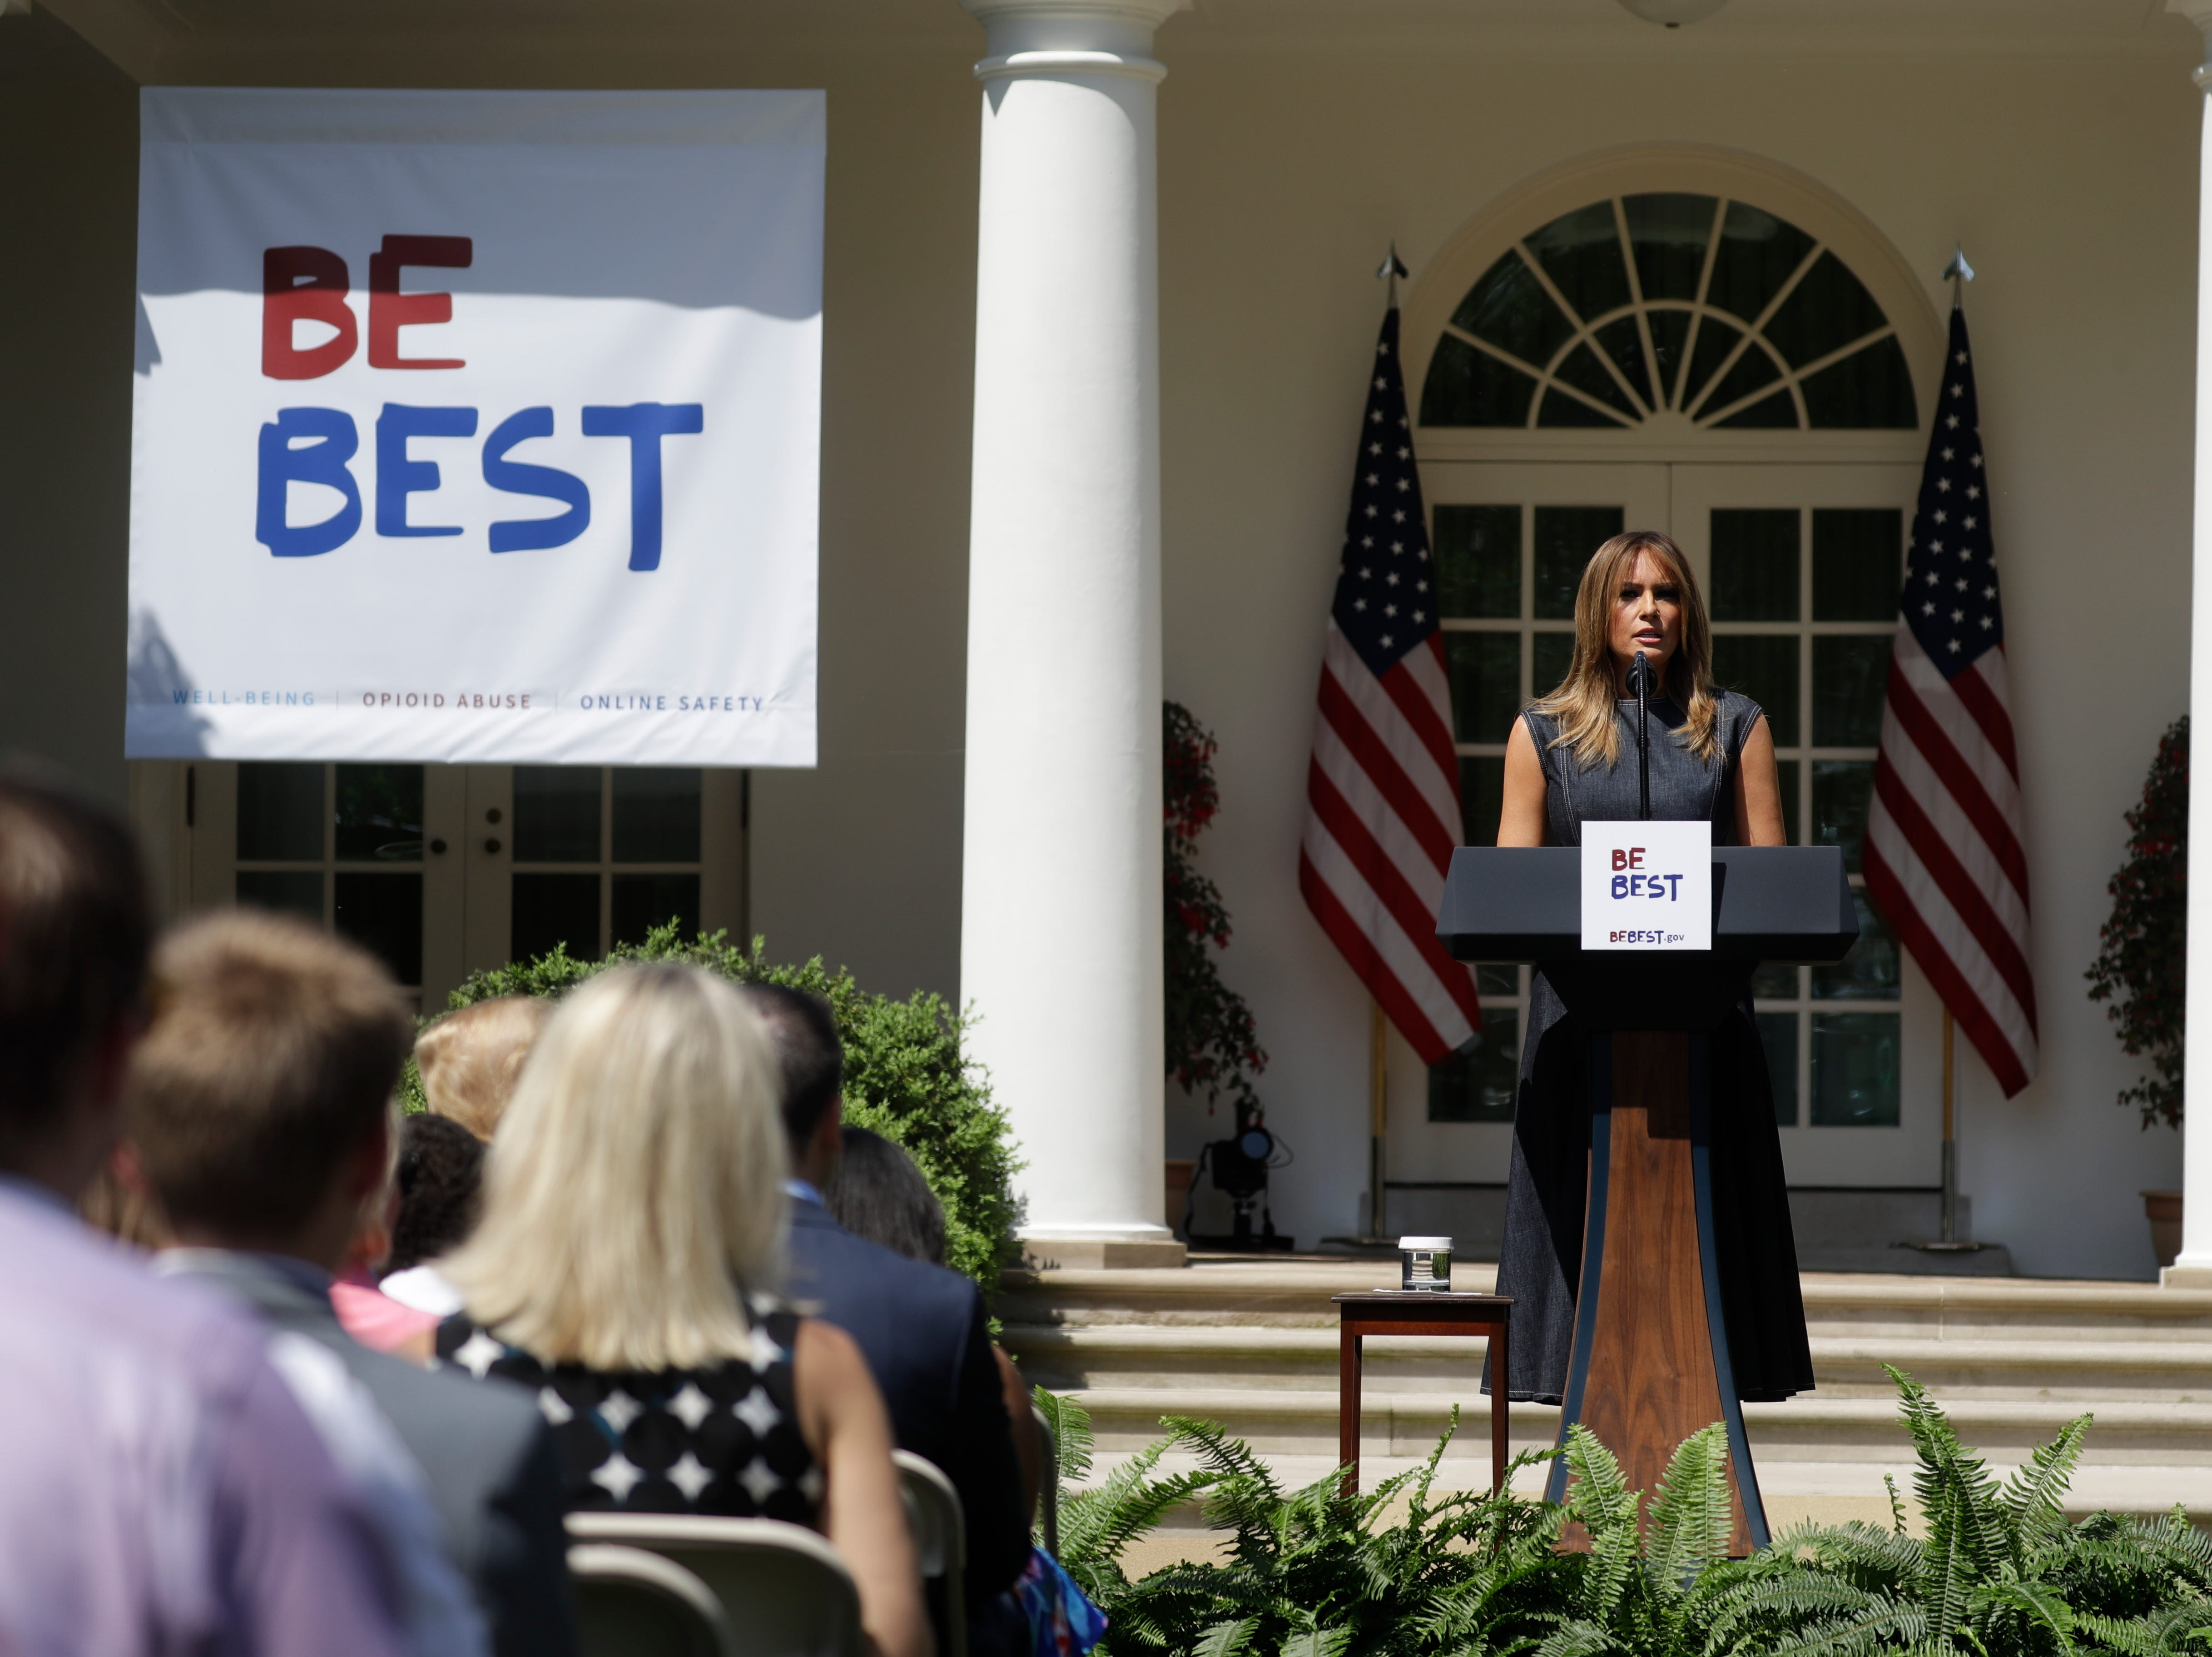 First lady Melania Trump speaks at the beginning of a program for the first lady's Be Best initiative in the Rose Garden of the White House, Tuesday, May 7, 2019, in Washington.